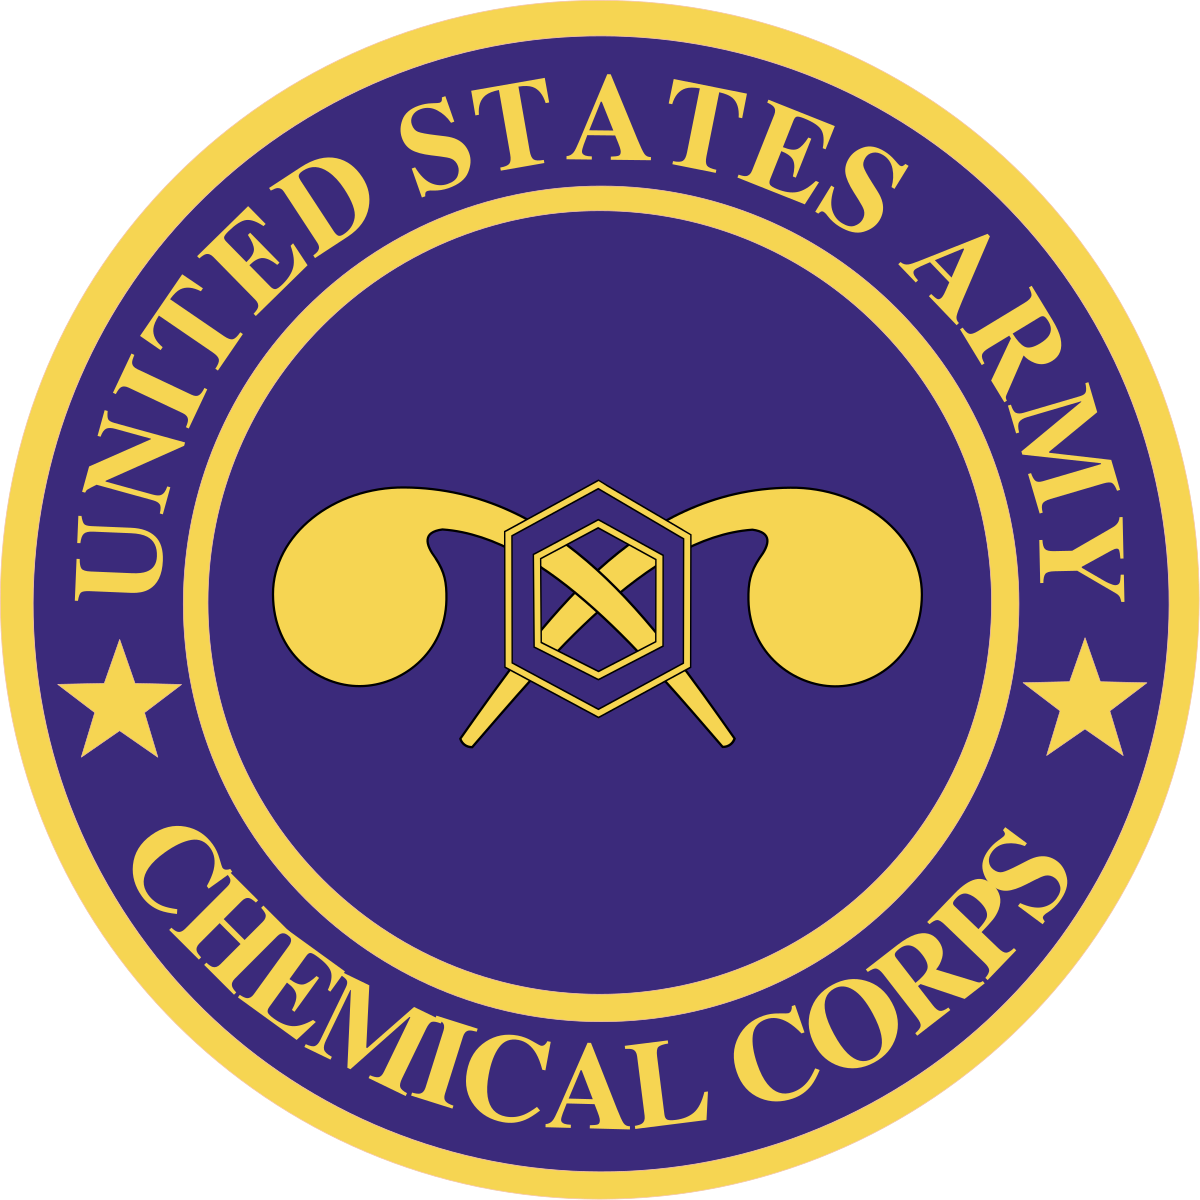 Nuclear drawing mask. Chemical corps wikipedia